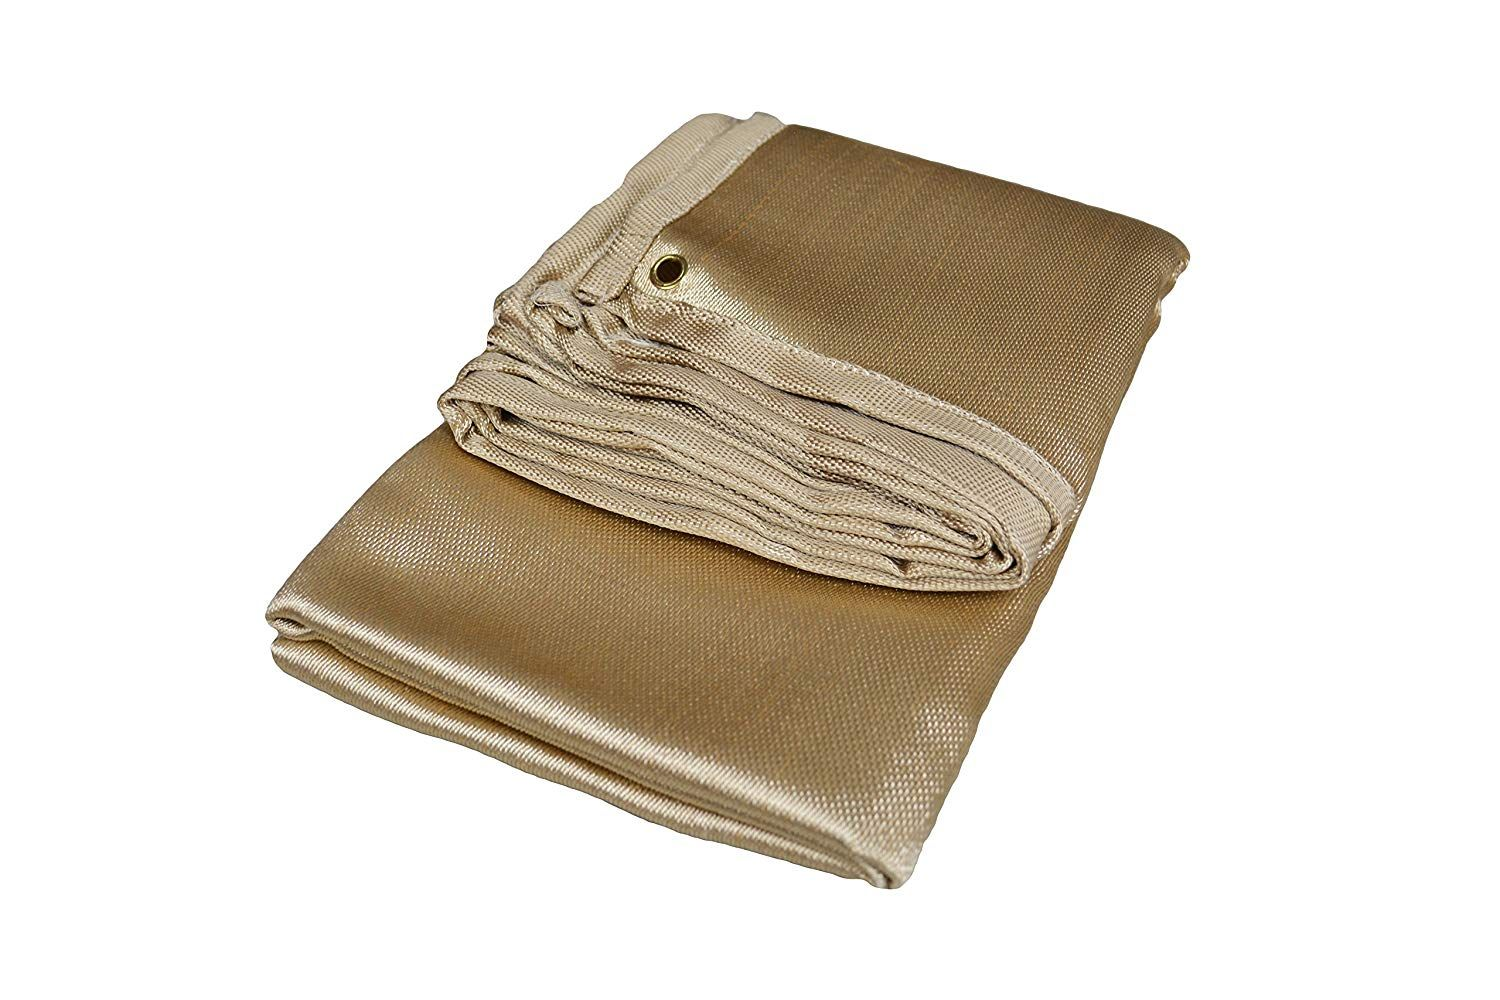 Large Welding Blanket Emergency Proof Fire Blanket 4 X 6 See The Photo Link Even More Details This Is An Affiliate Link Fire Retardant Welding Blanket